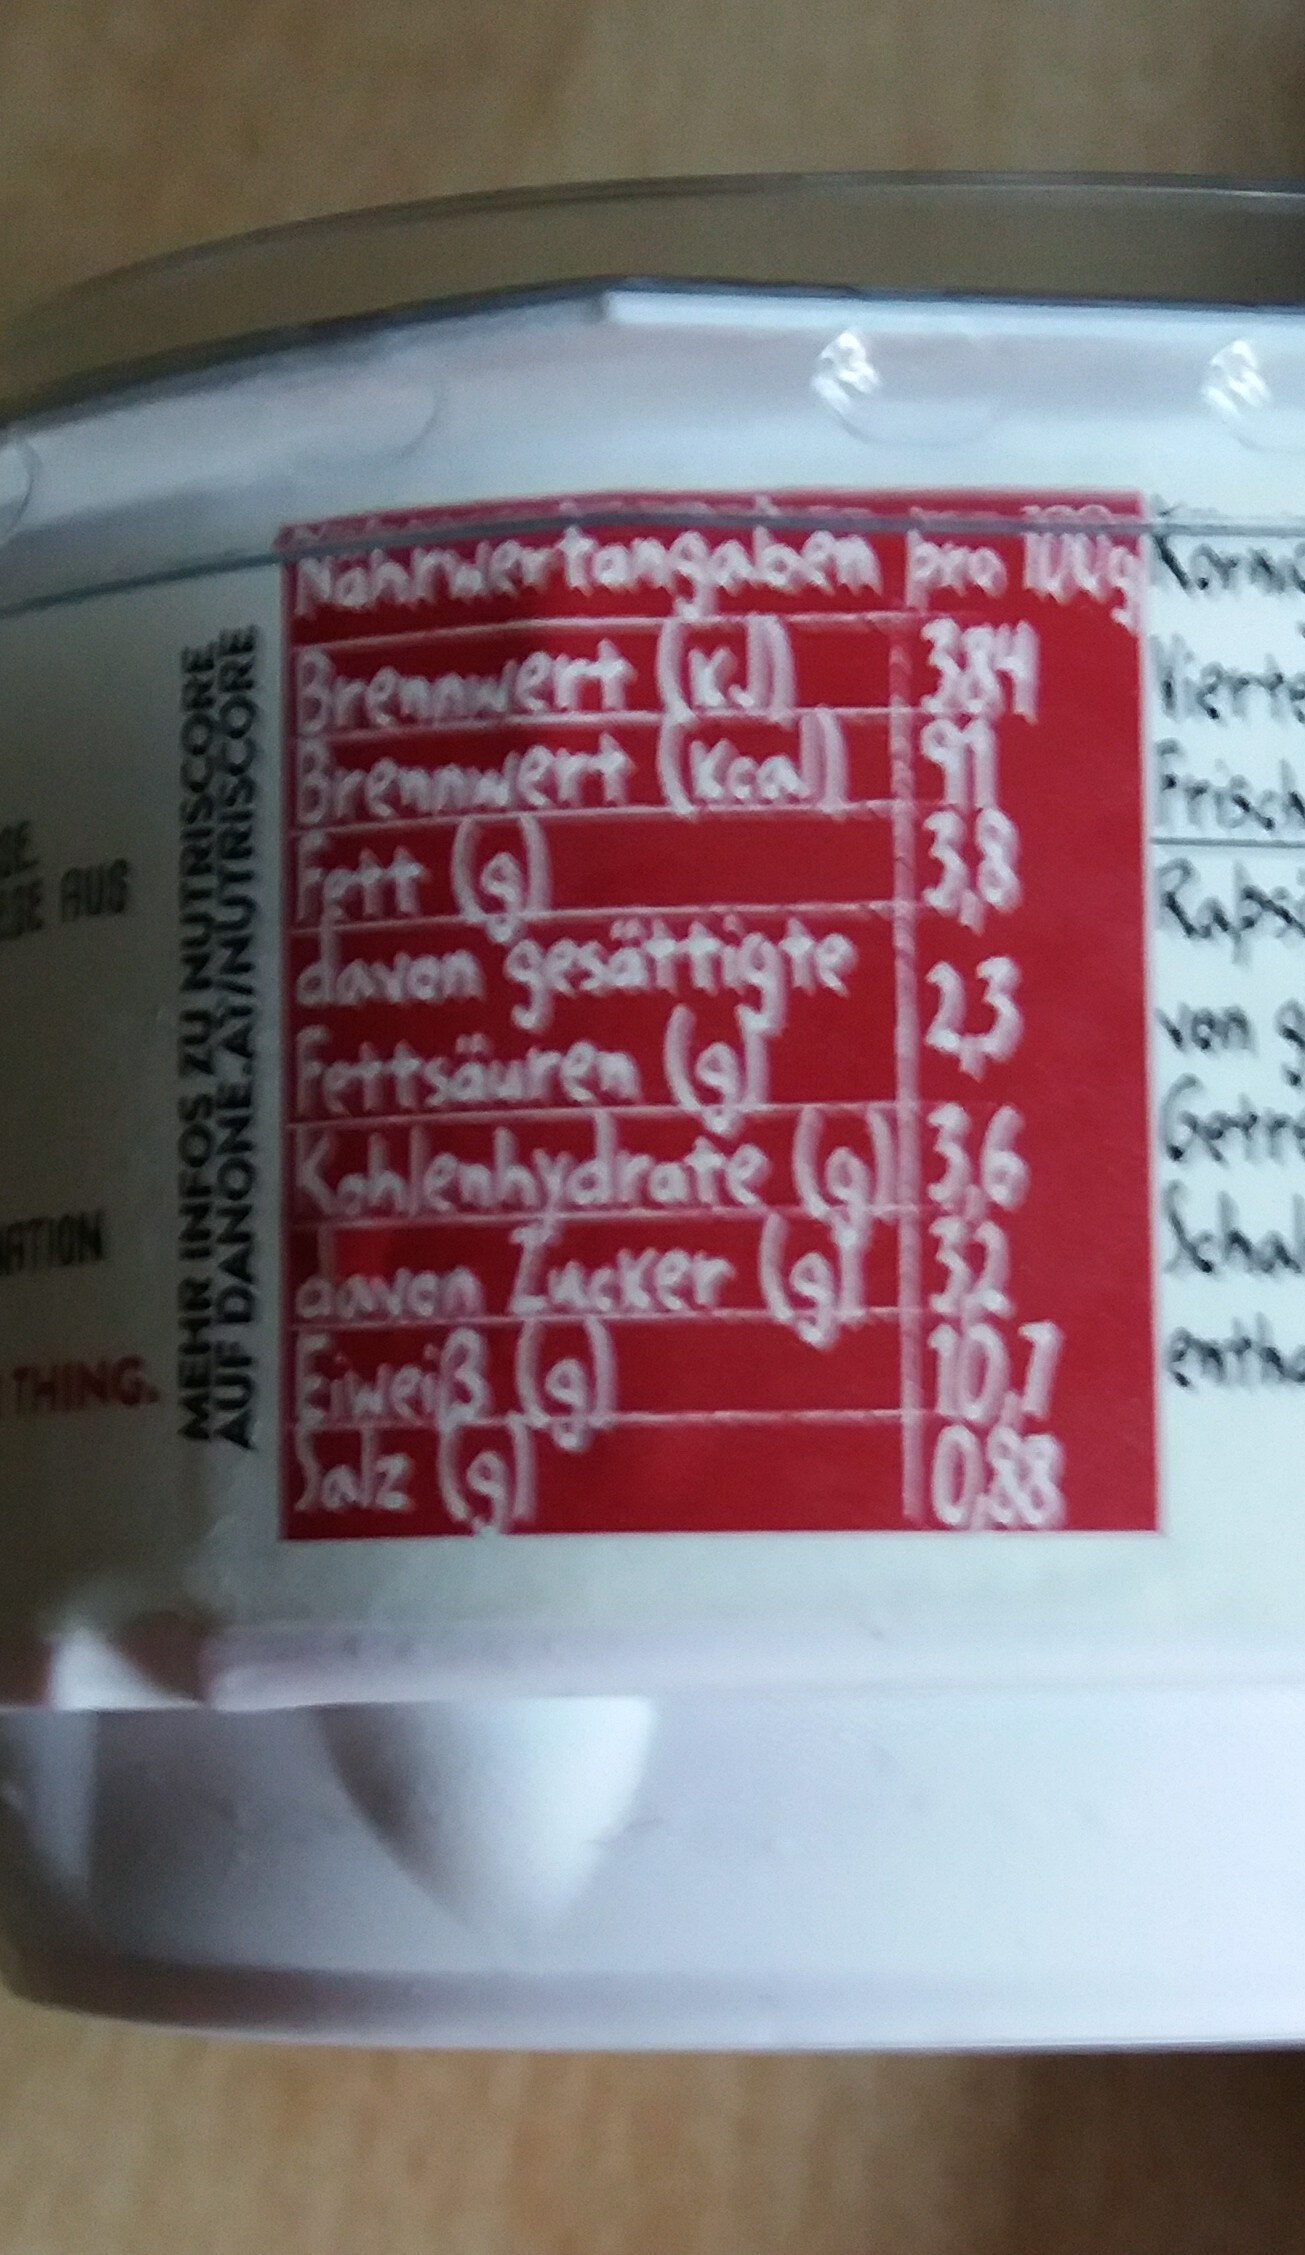 Cottage Cheese Rote Rübe und Meerrettich - Informations nutritionnelles